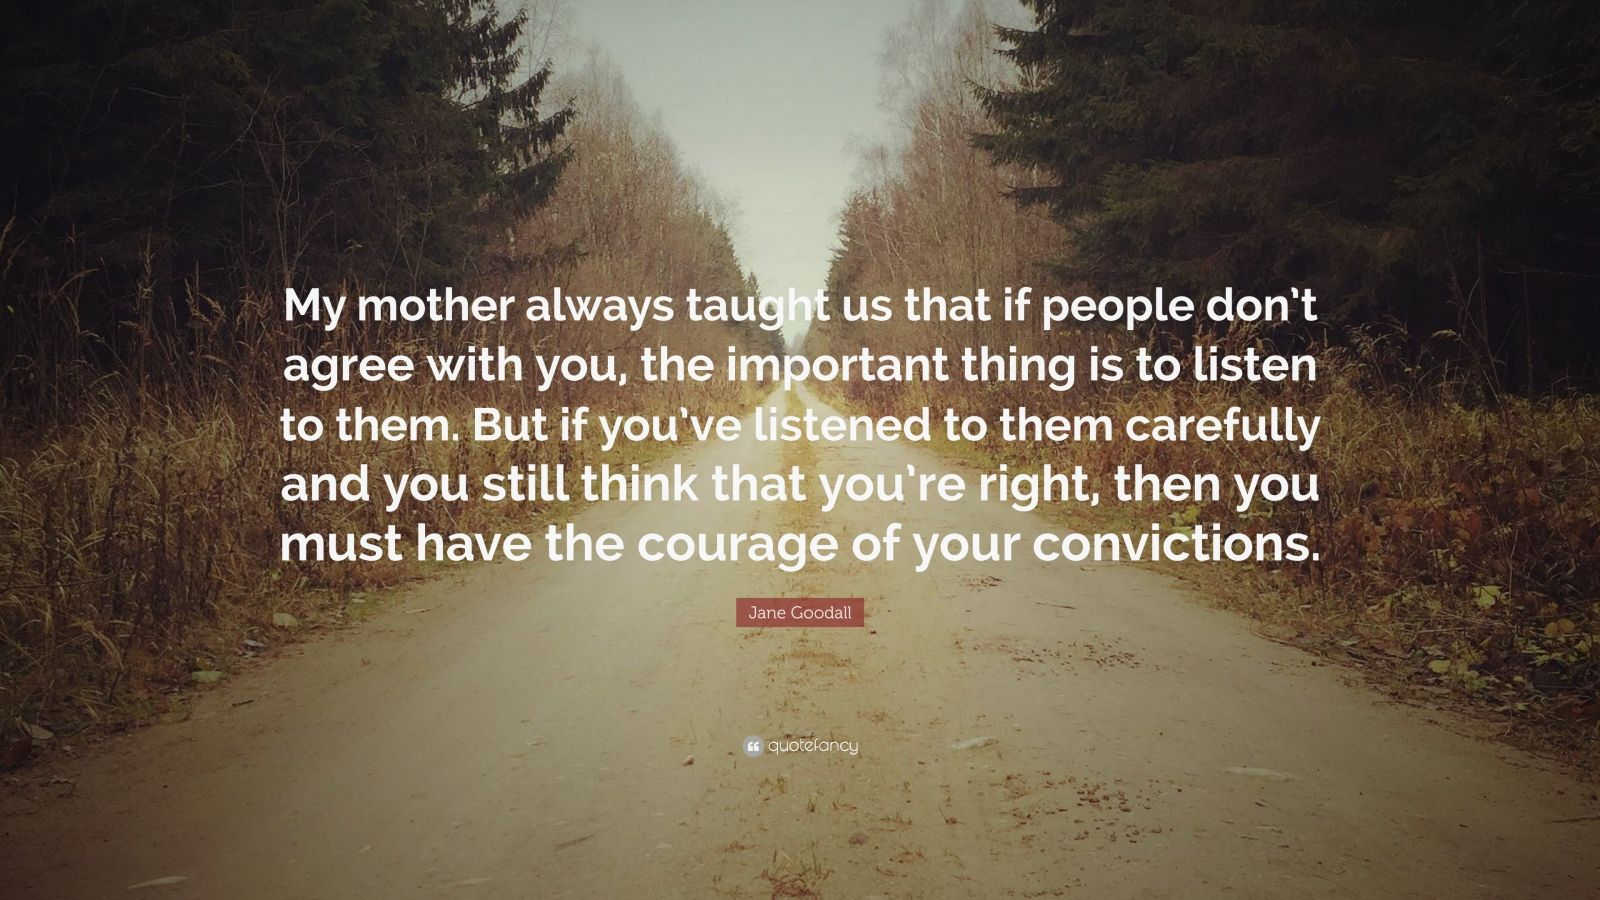 "Jane Goodall Quote: ""My mother always taught us that if people don't agree with you, the important thing is to listen to them. But if you've listened to them carefully and you still think that you're right, then you must have the courage of your convictions."""